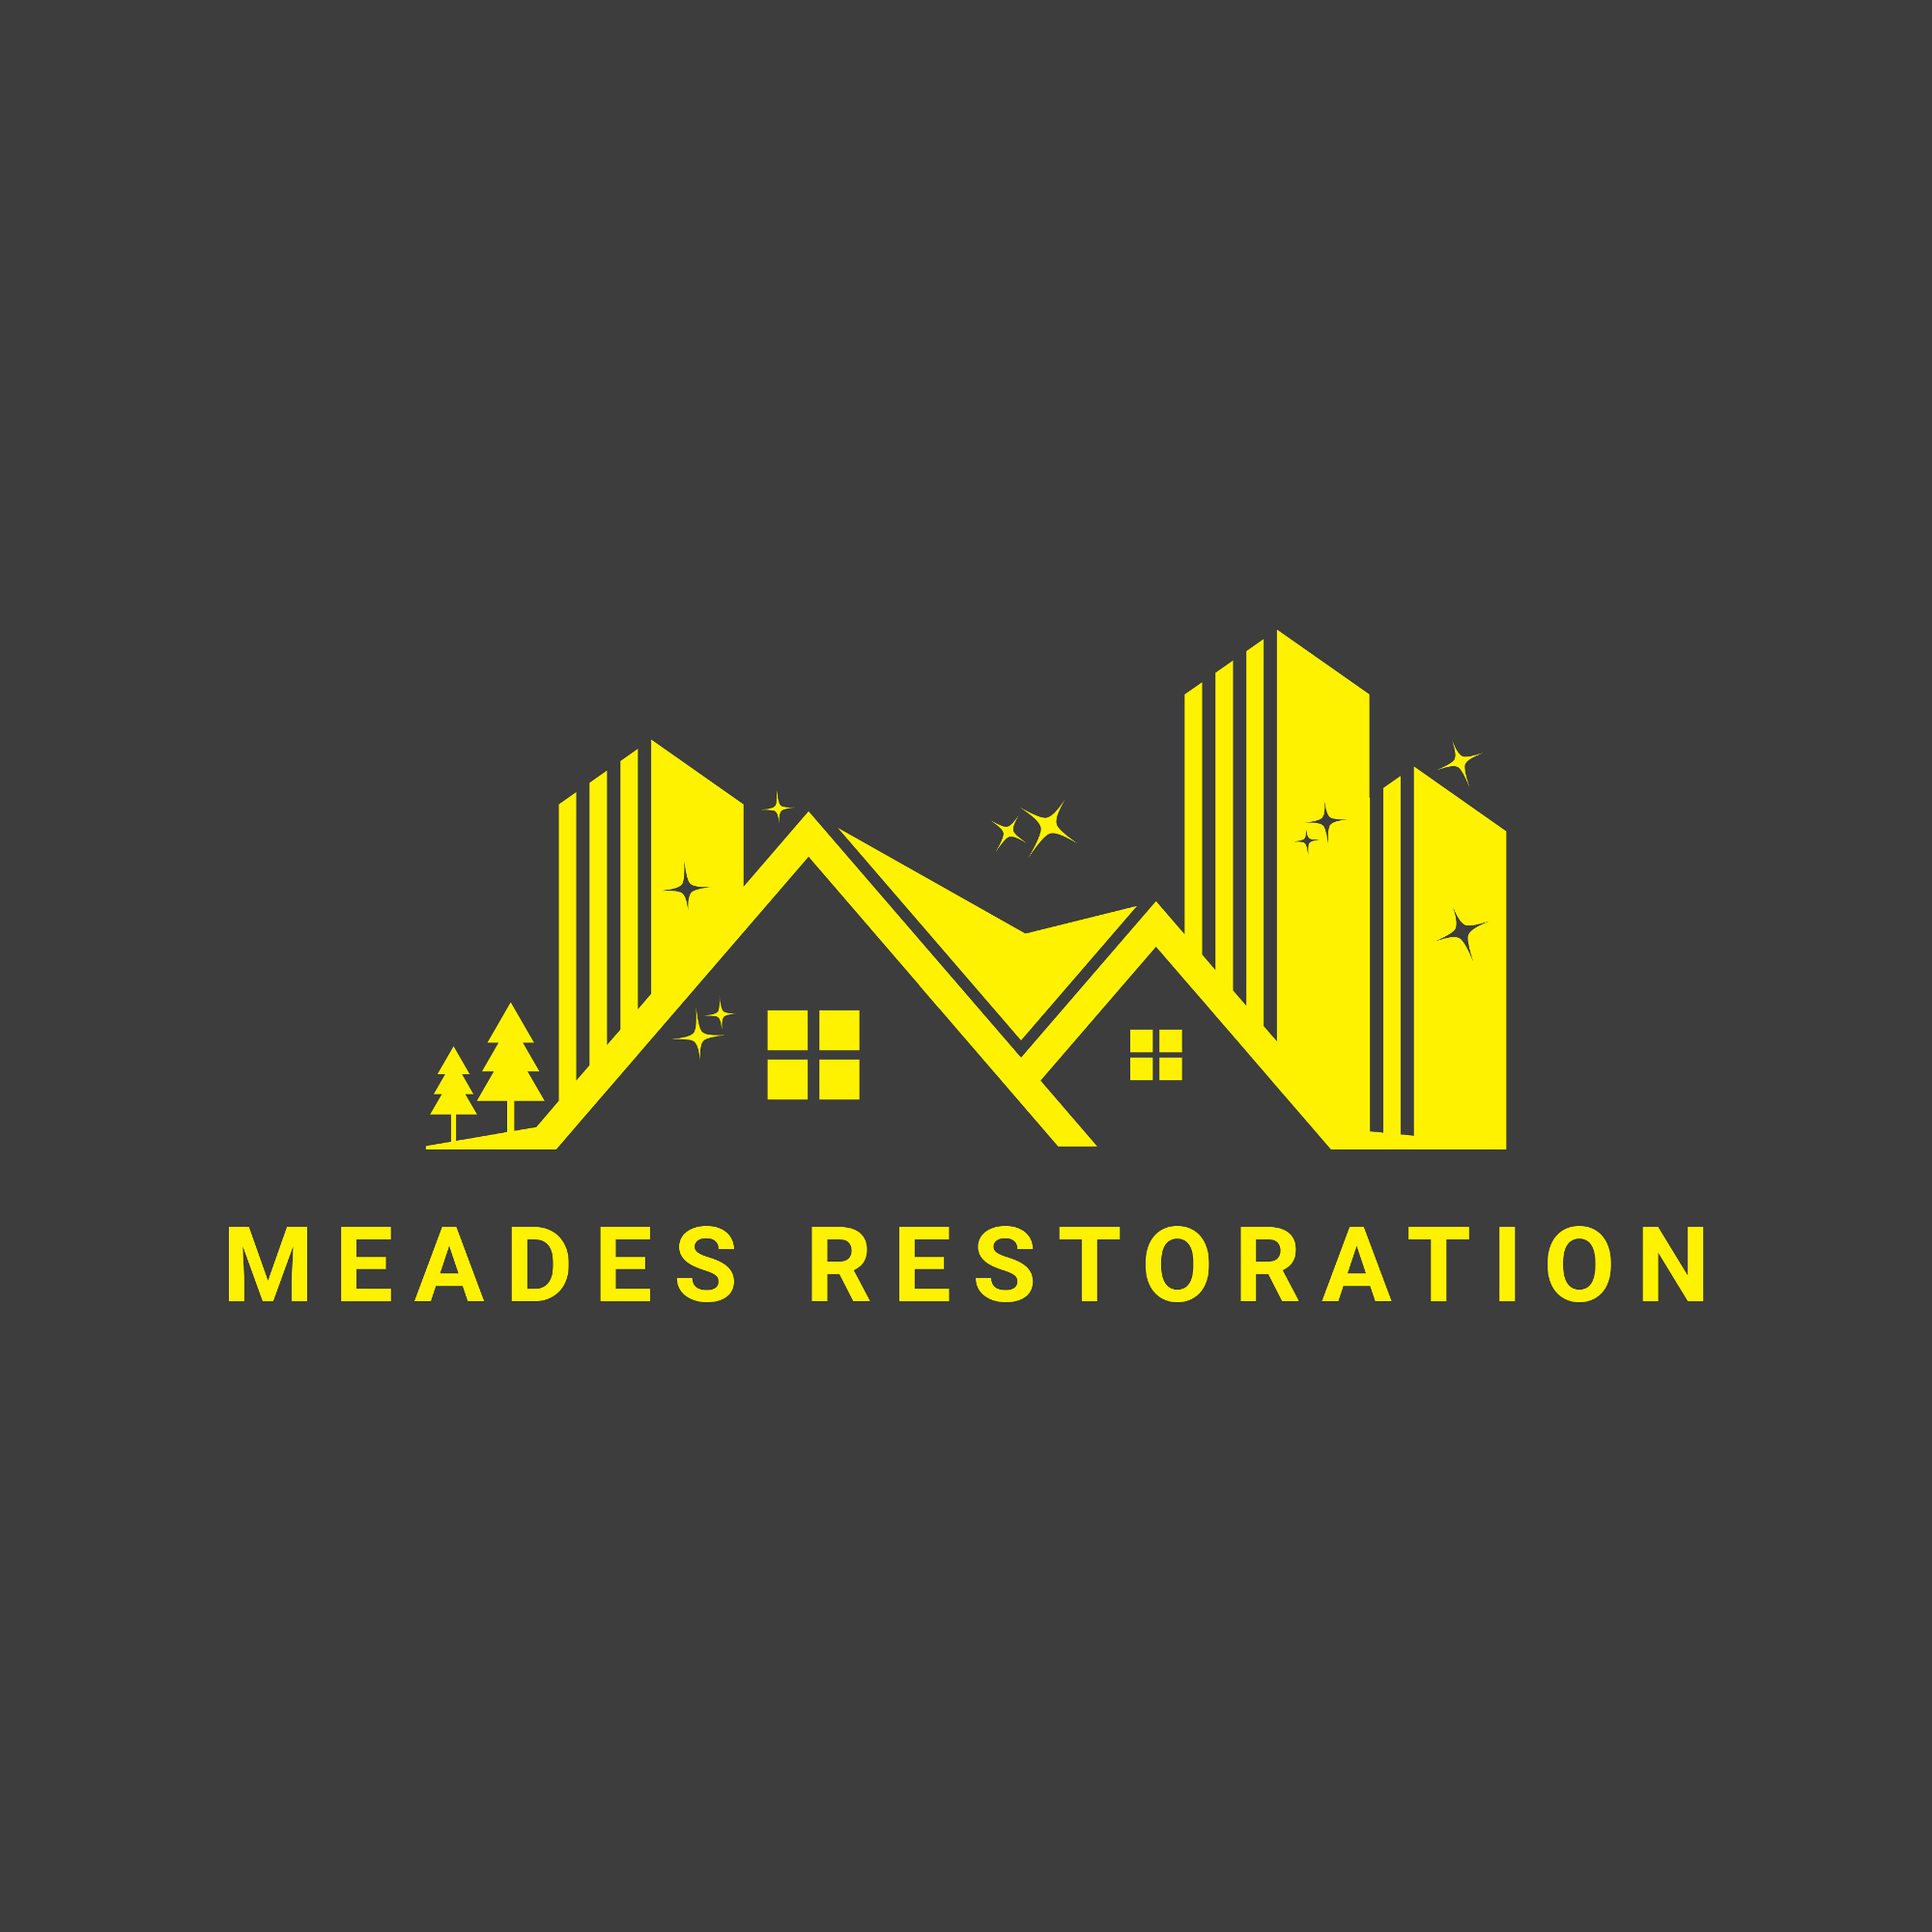 Meades Restoration logo